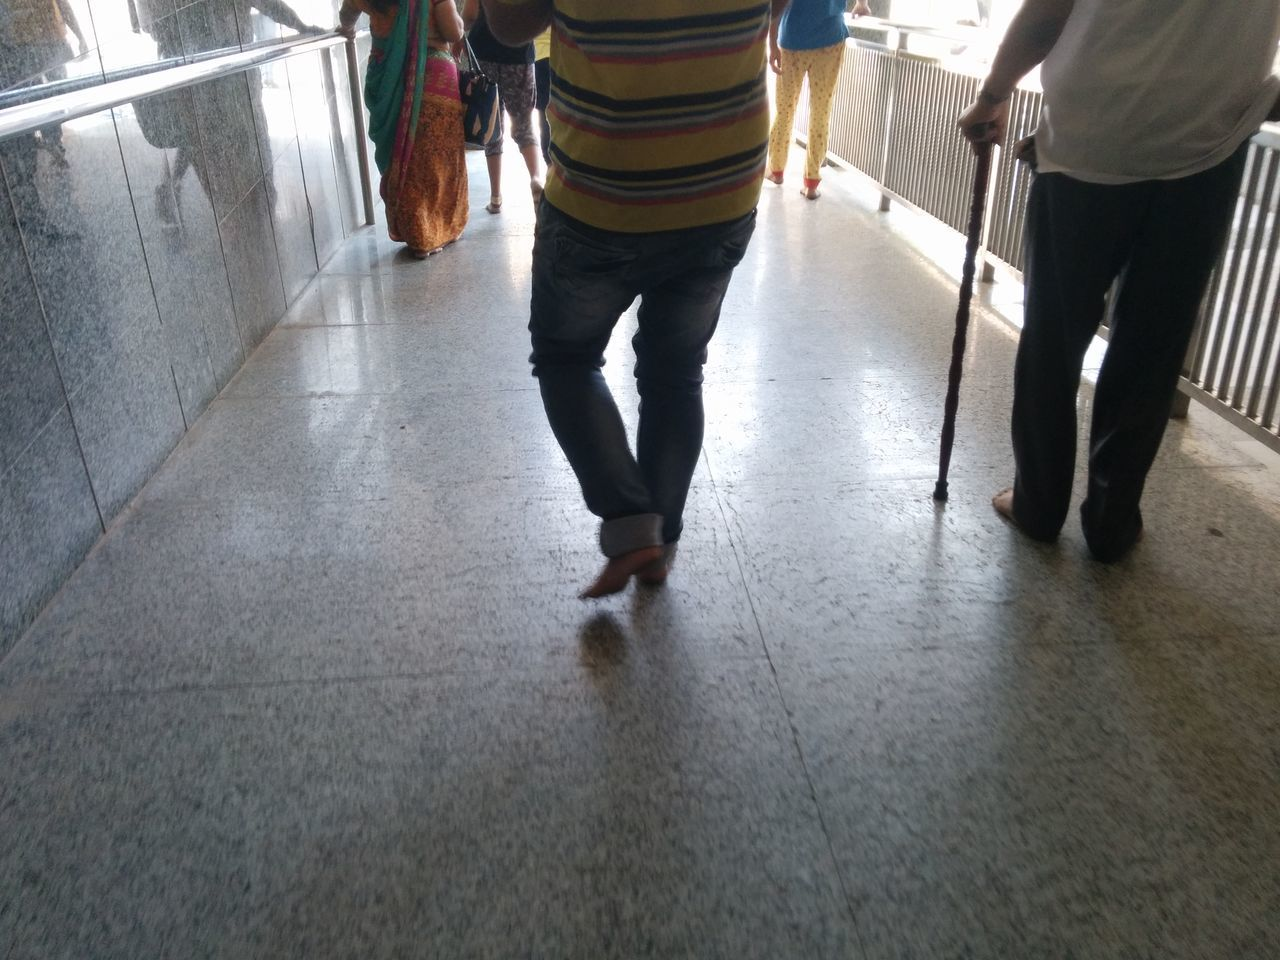 walking, low section, indoors, real people, men, togetherness, leisure activity, women, standing, lifestyles, day, people, adult